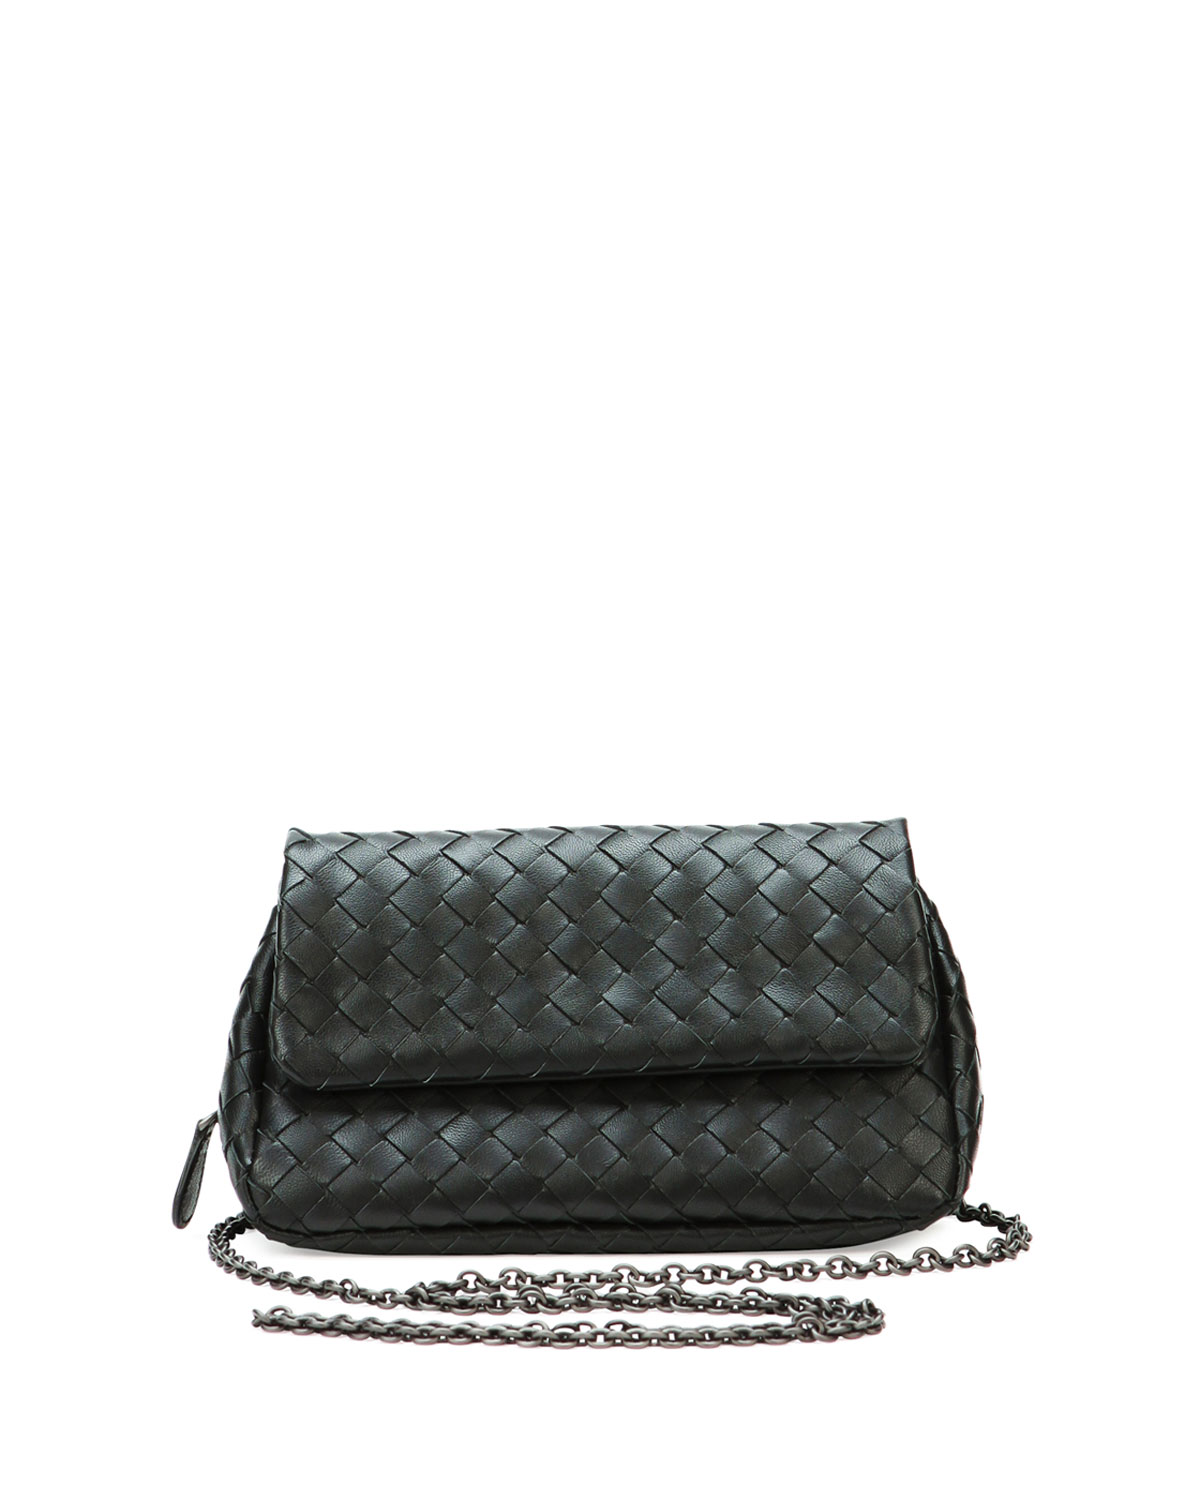 Bottega Veneta Intrecciato Small Chain Crossbody Bag  71d437b7c9f33